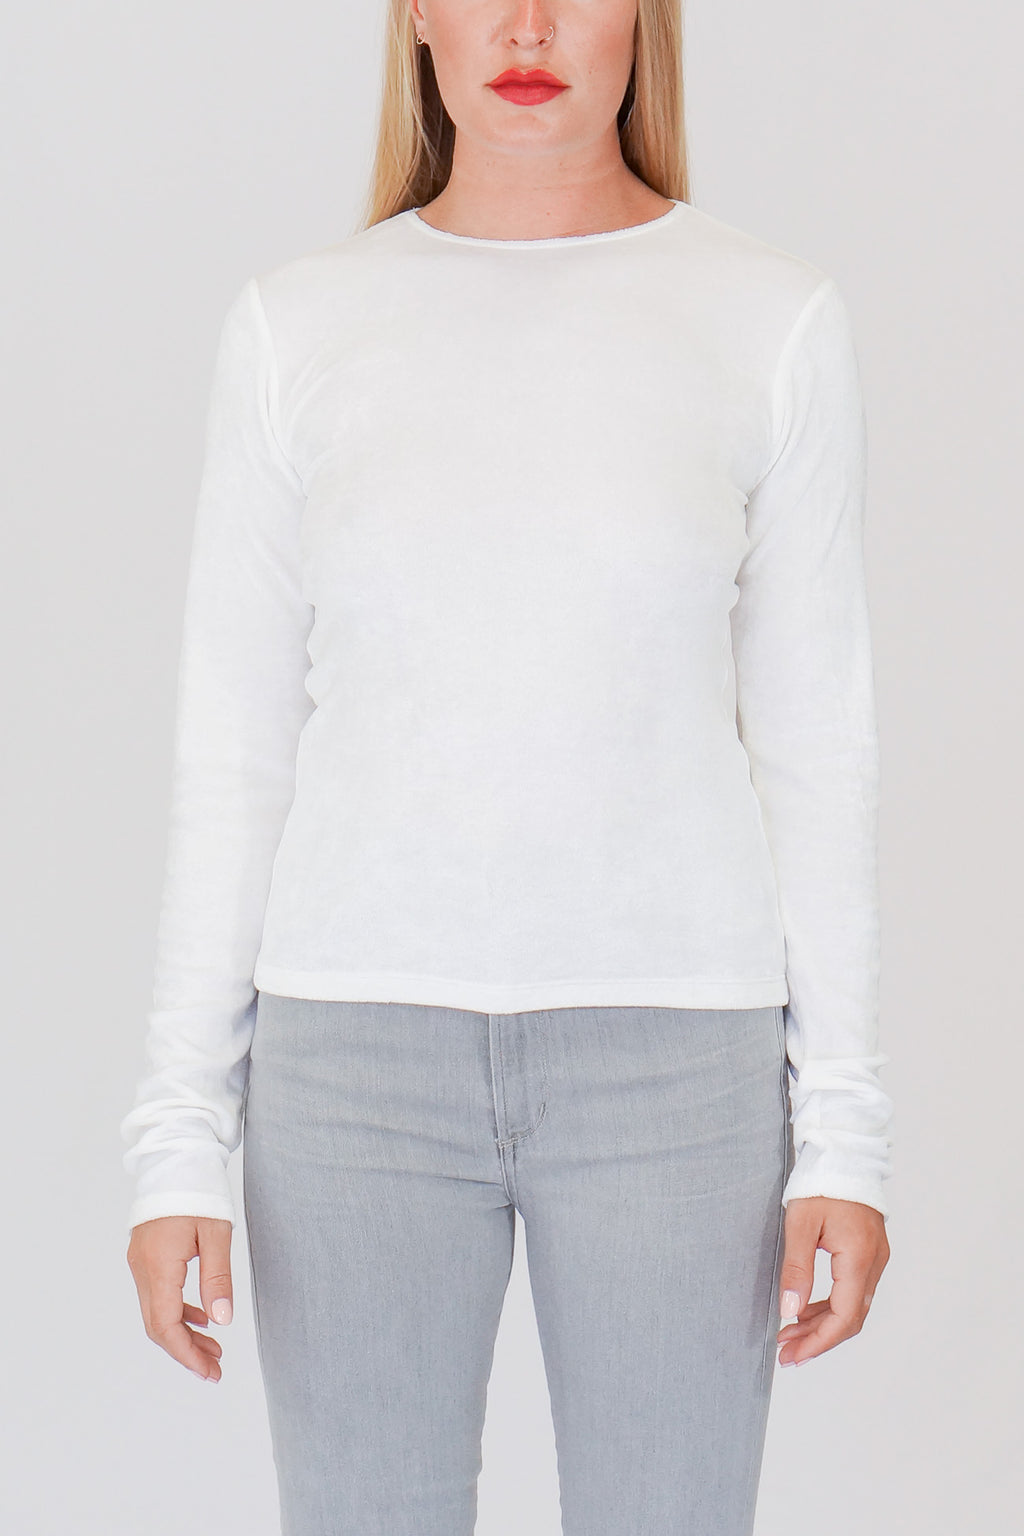 Base Range Omo Long Sleeve Shiny Velour Tee in White